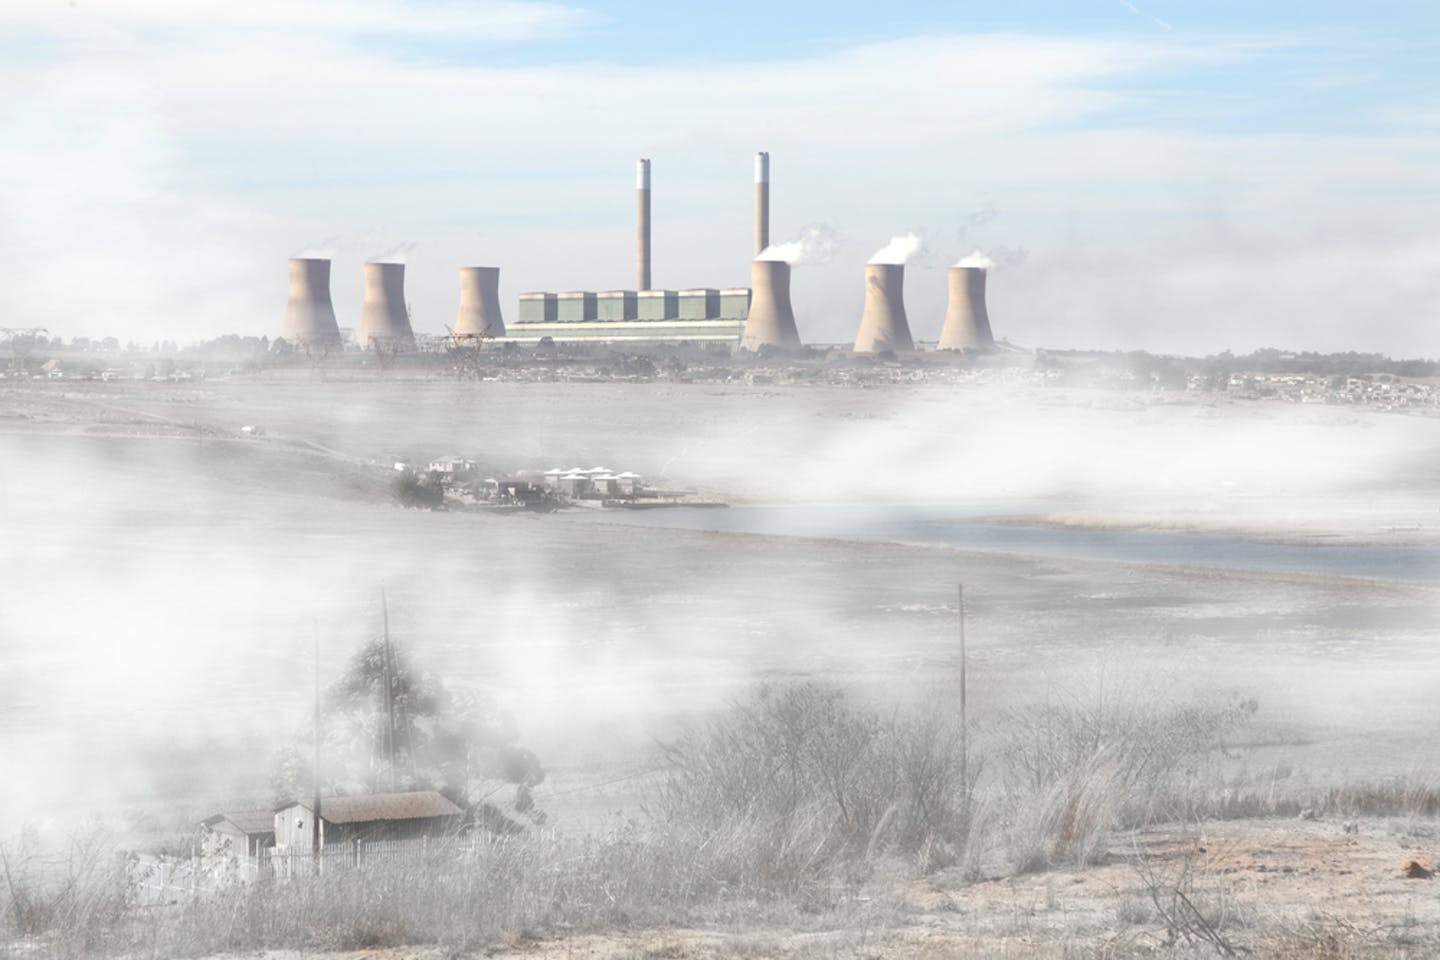 South Africa's coal-fired power plants